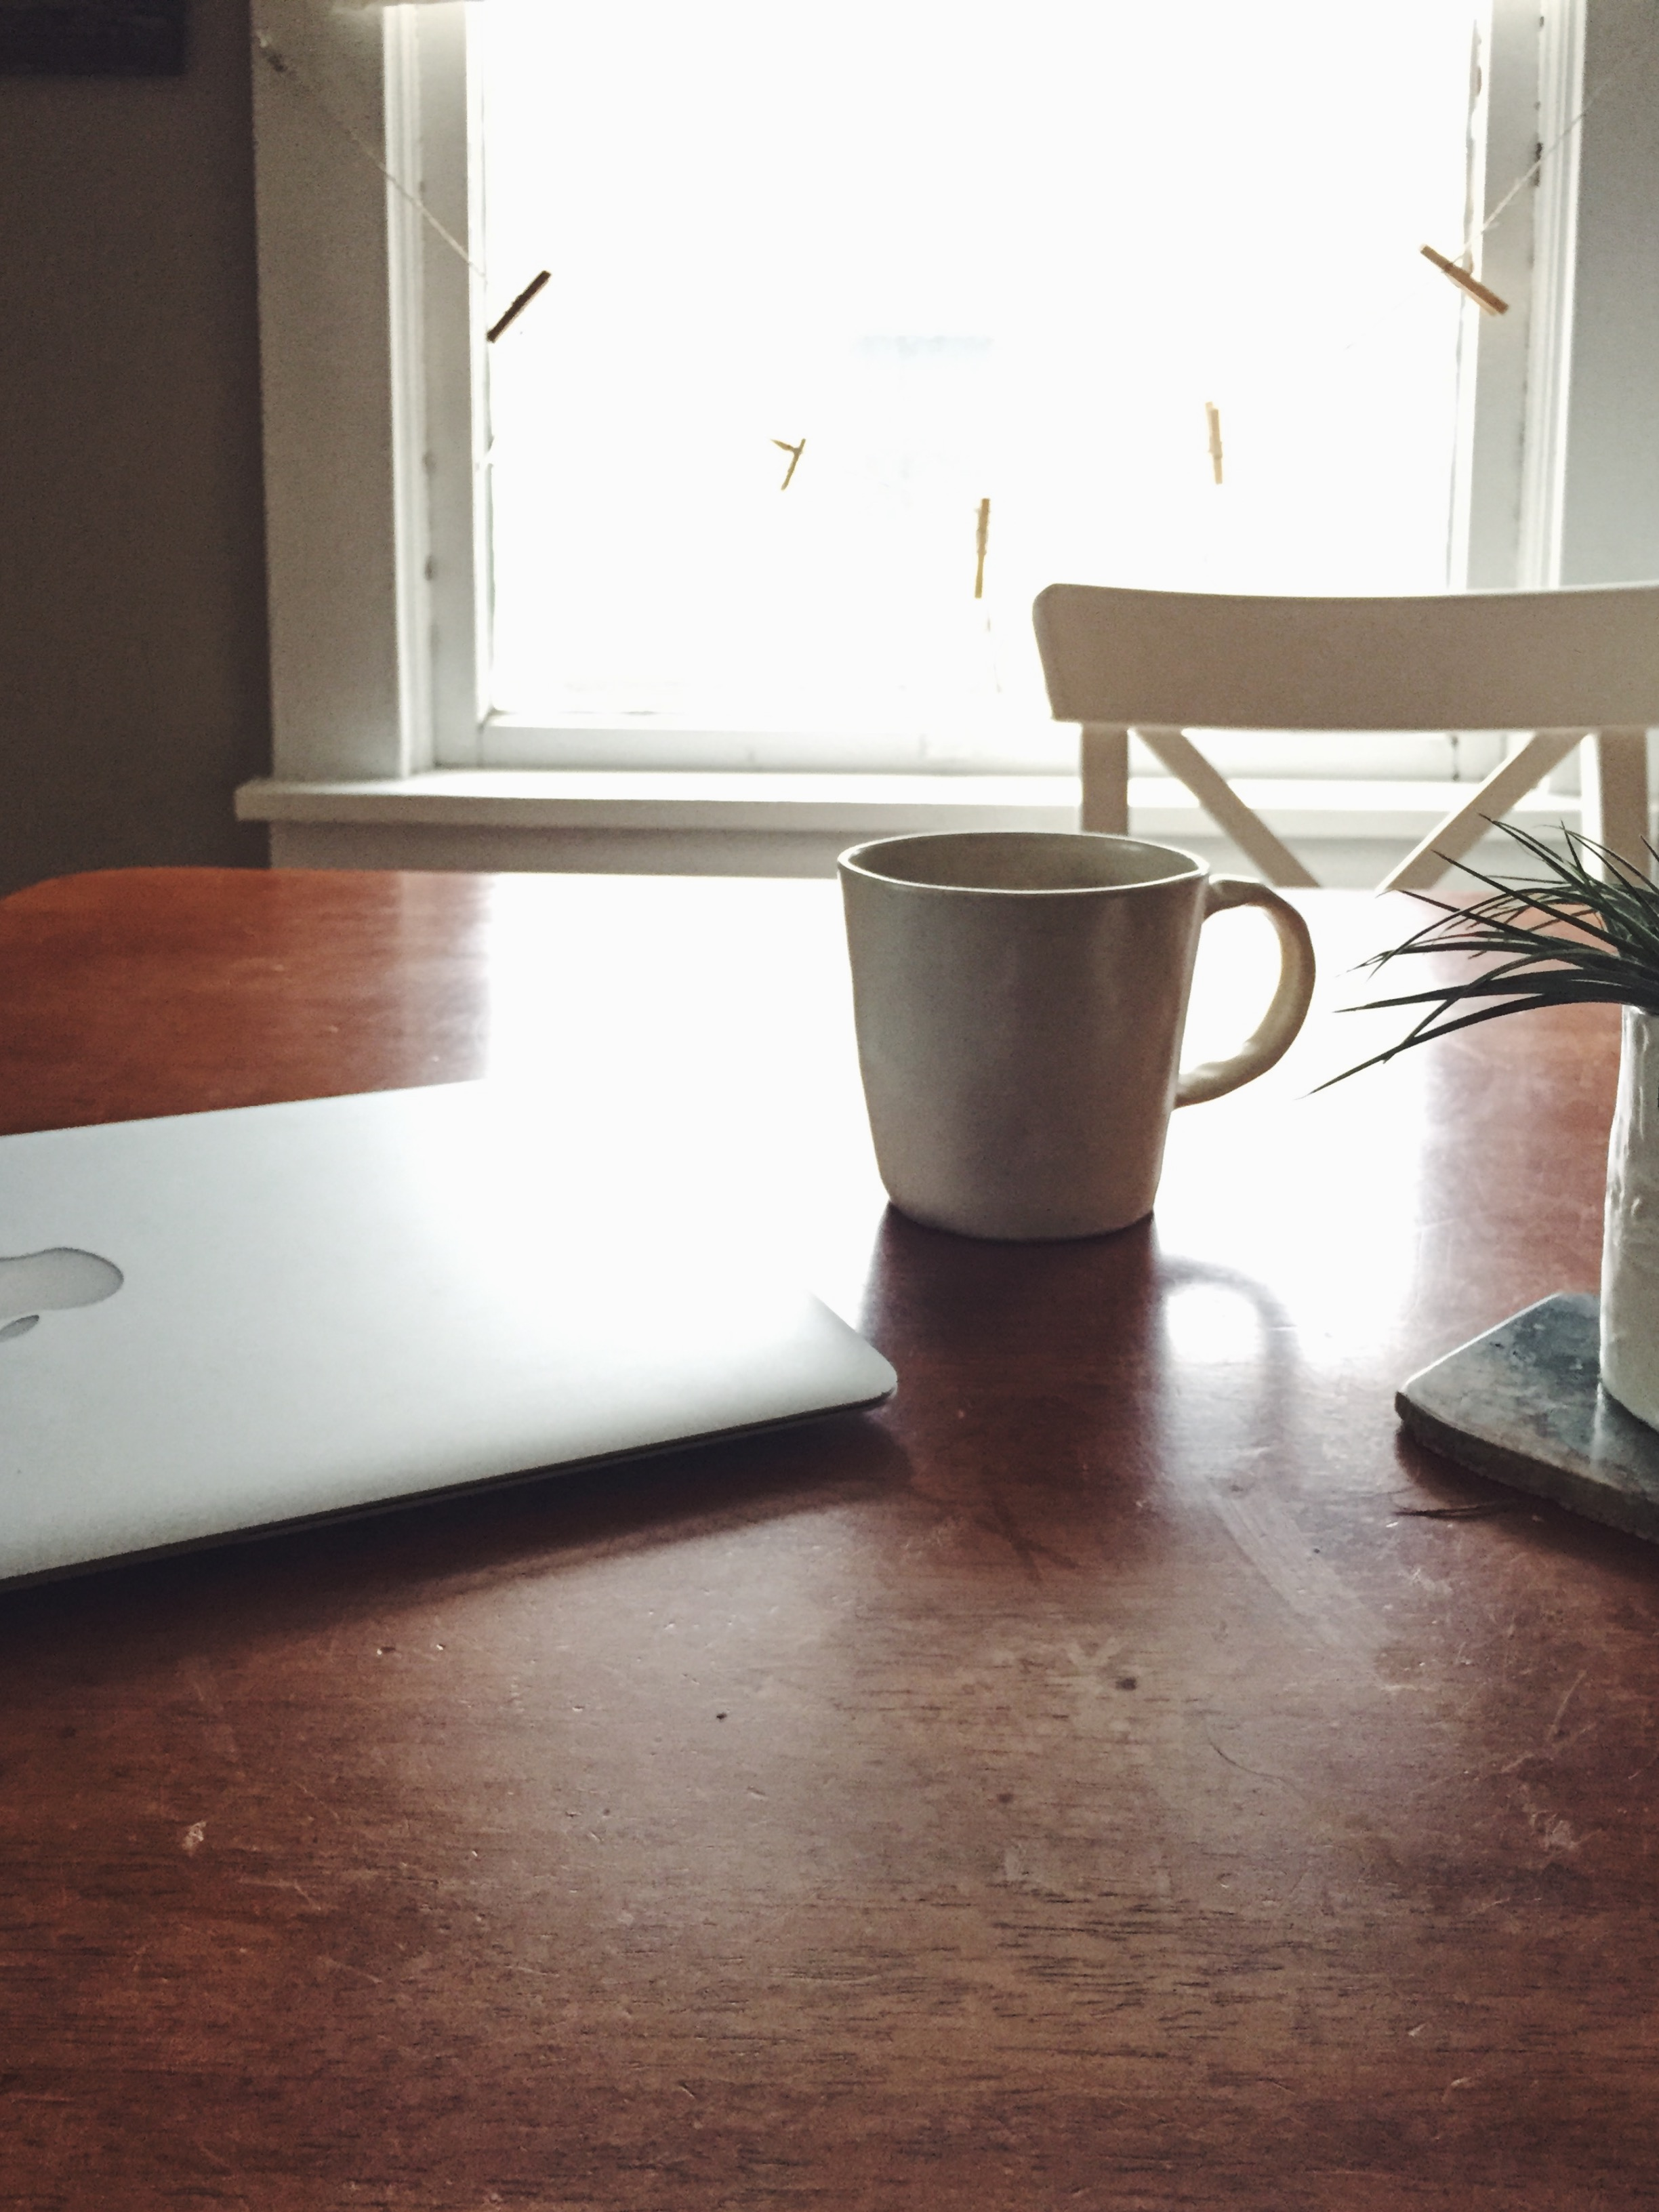 My desk at the kitchen table with my favorite cup.